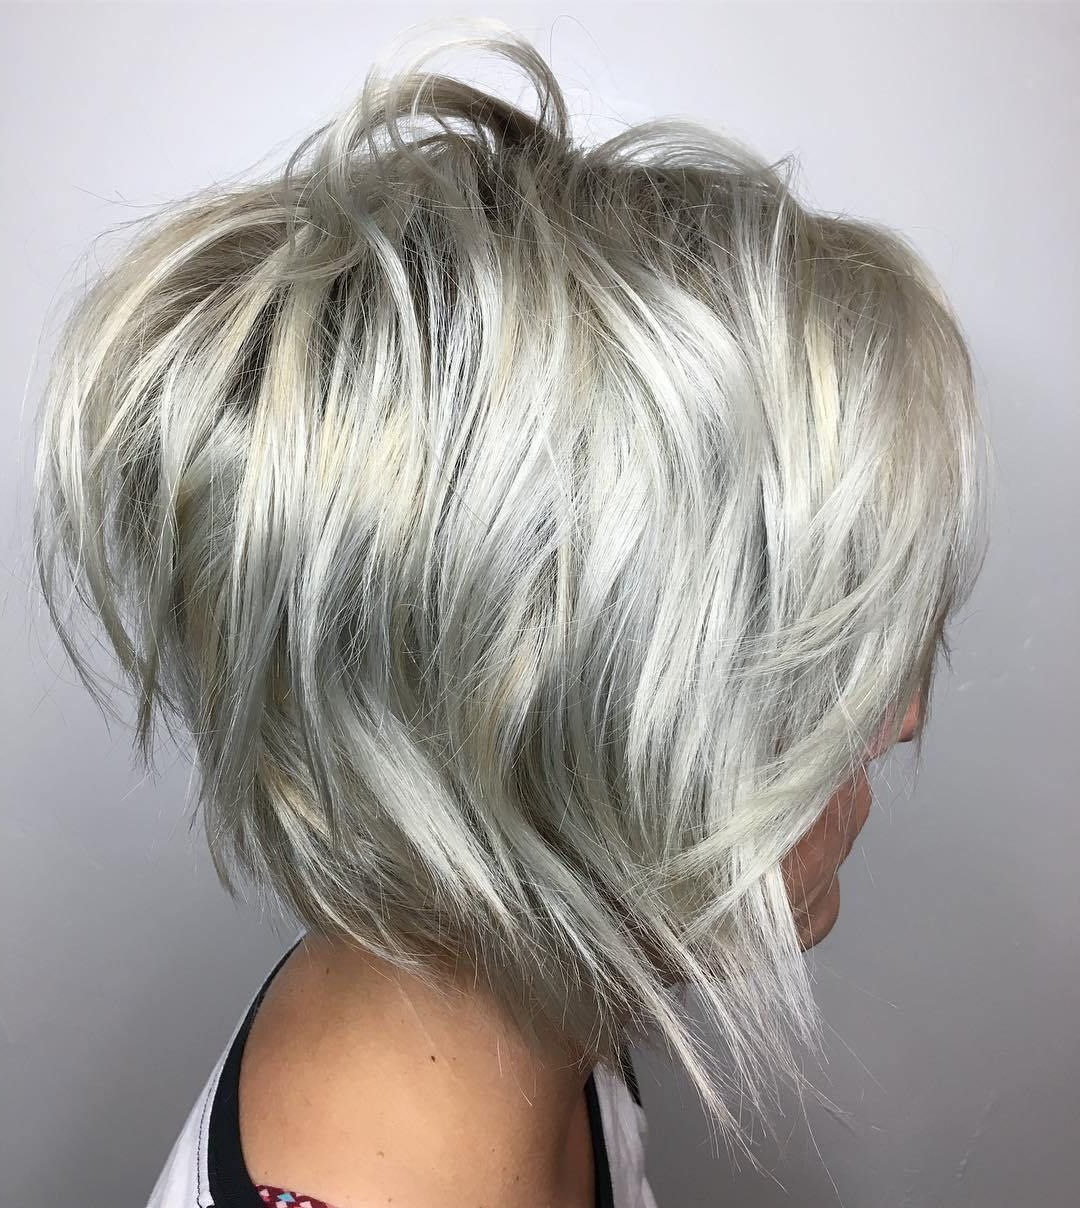 Pin On Hair Pertaining To Silver White Shaggy Haircuts (View 2 of 20)